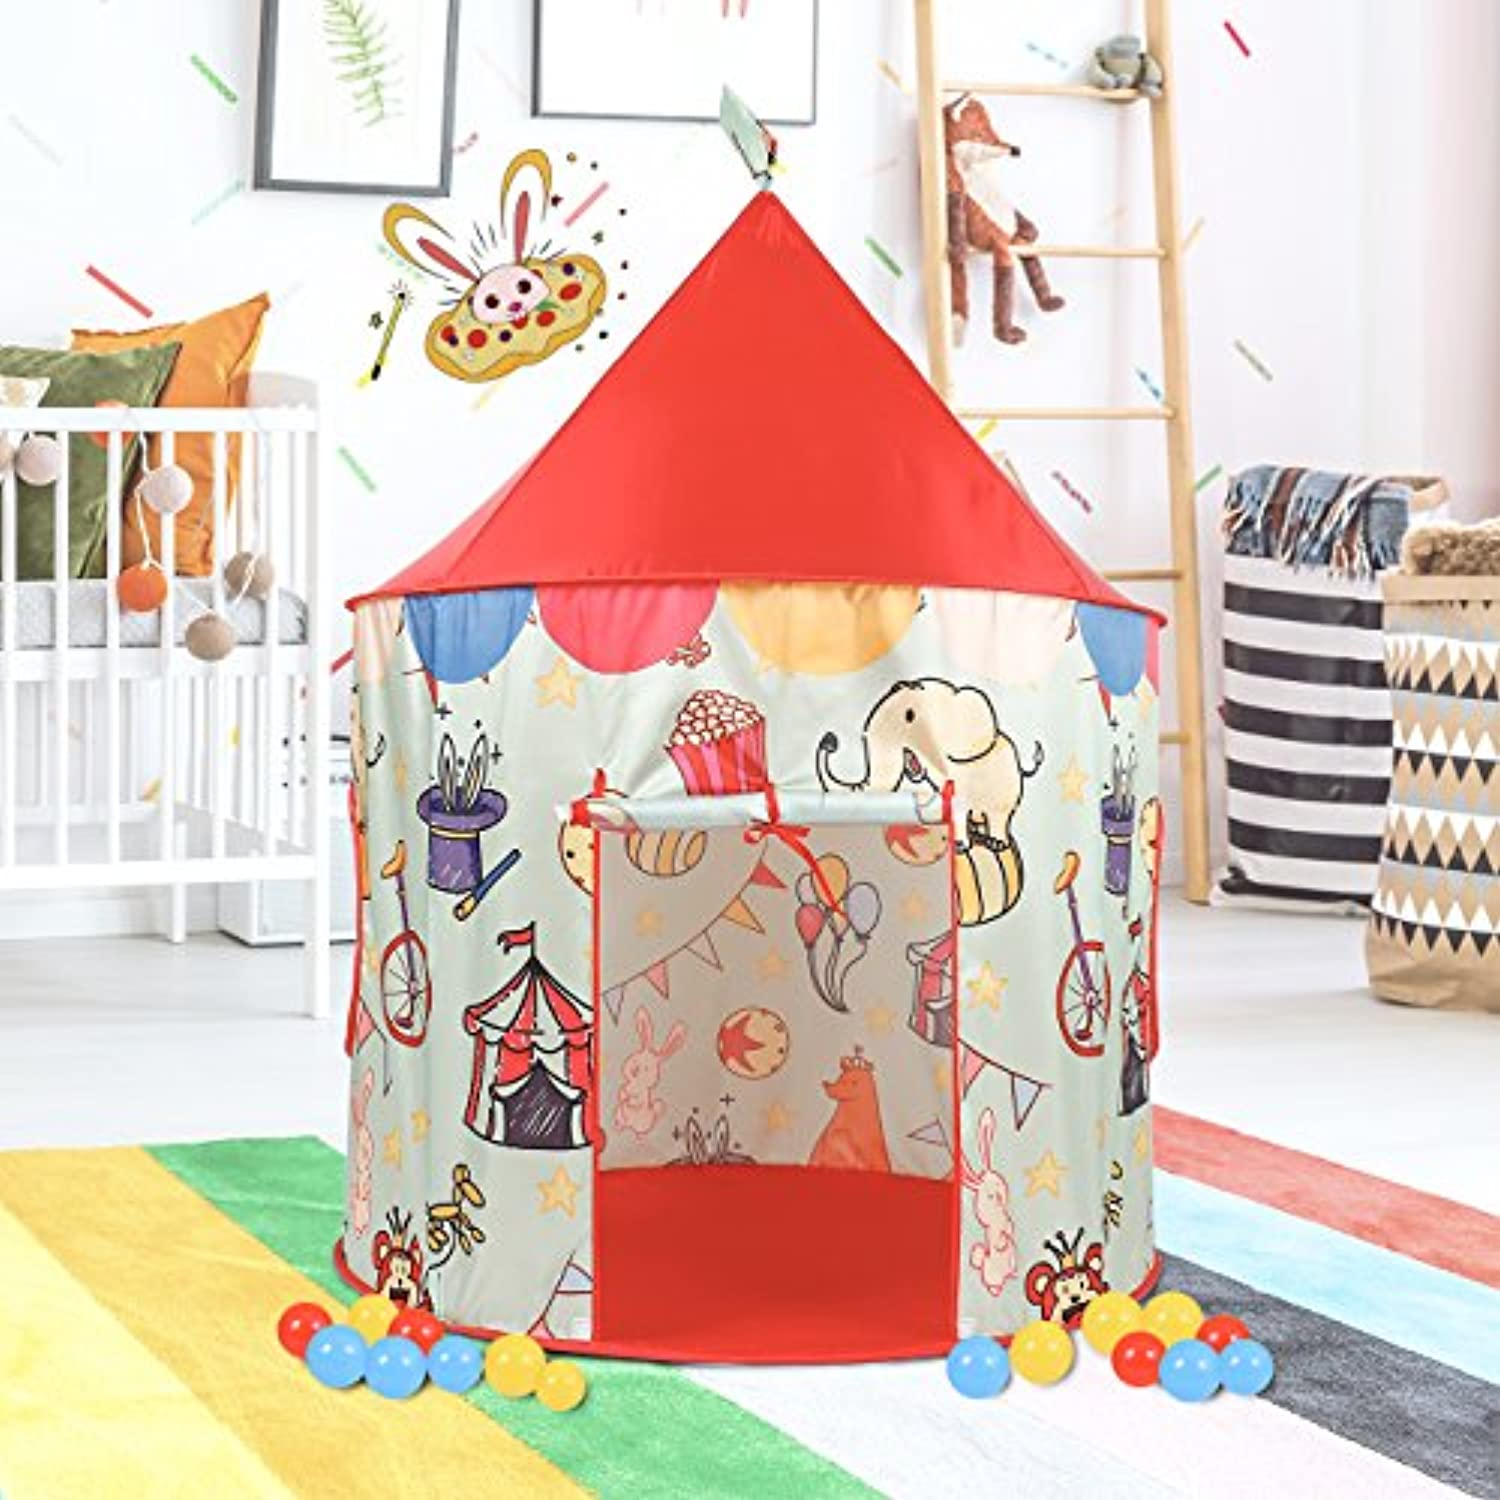 springbuds Circus子再生テント、Pop Up Play Tent for Kids ,ポータブルPlayhouse forインドア&アウトドア使用